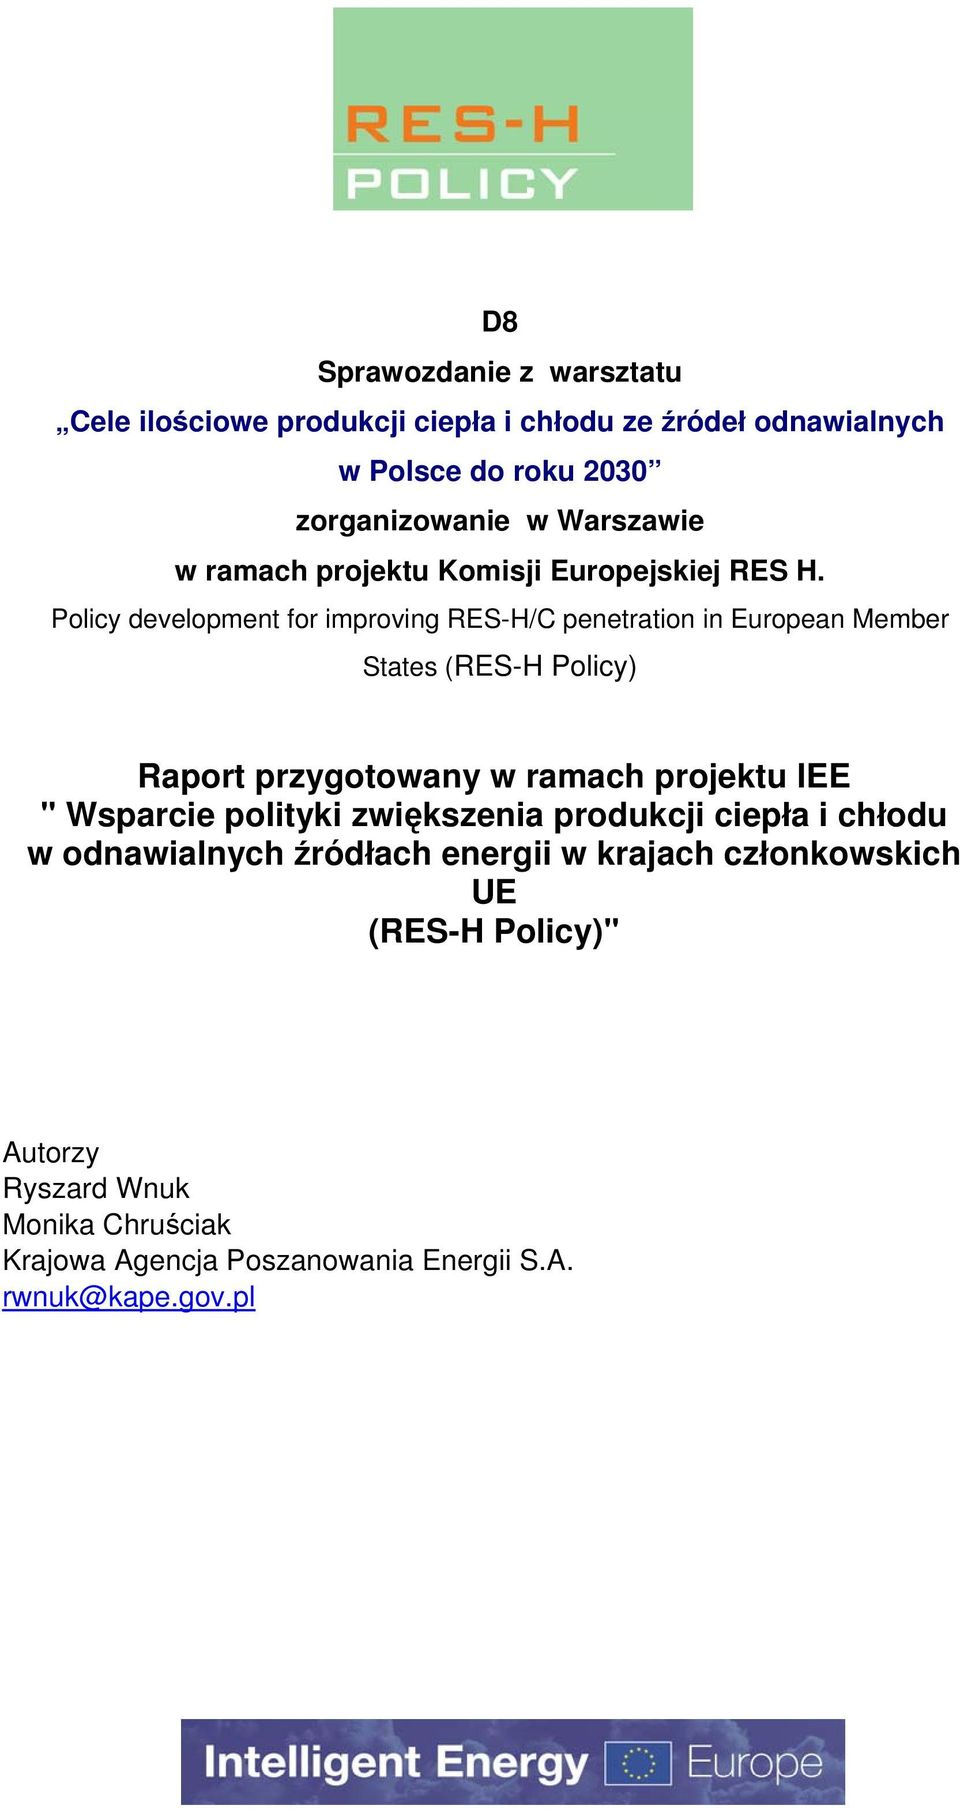 Policy development for improving RES-H/C penetration in European Member States (RES-H Policy) Raport przygotowany w ramach projektu IEE ""